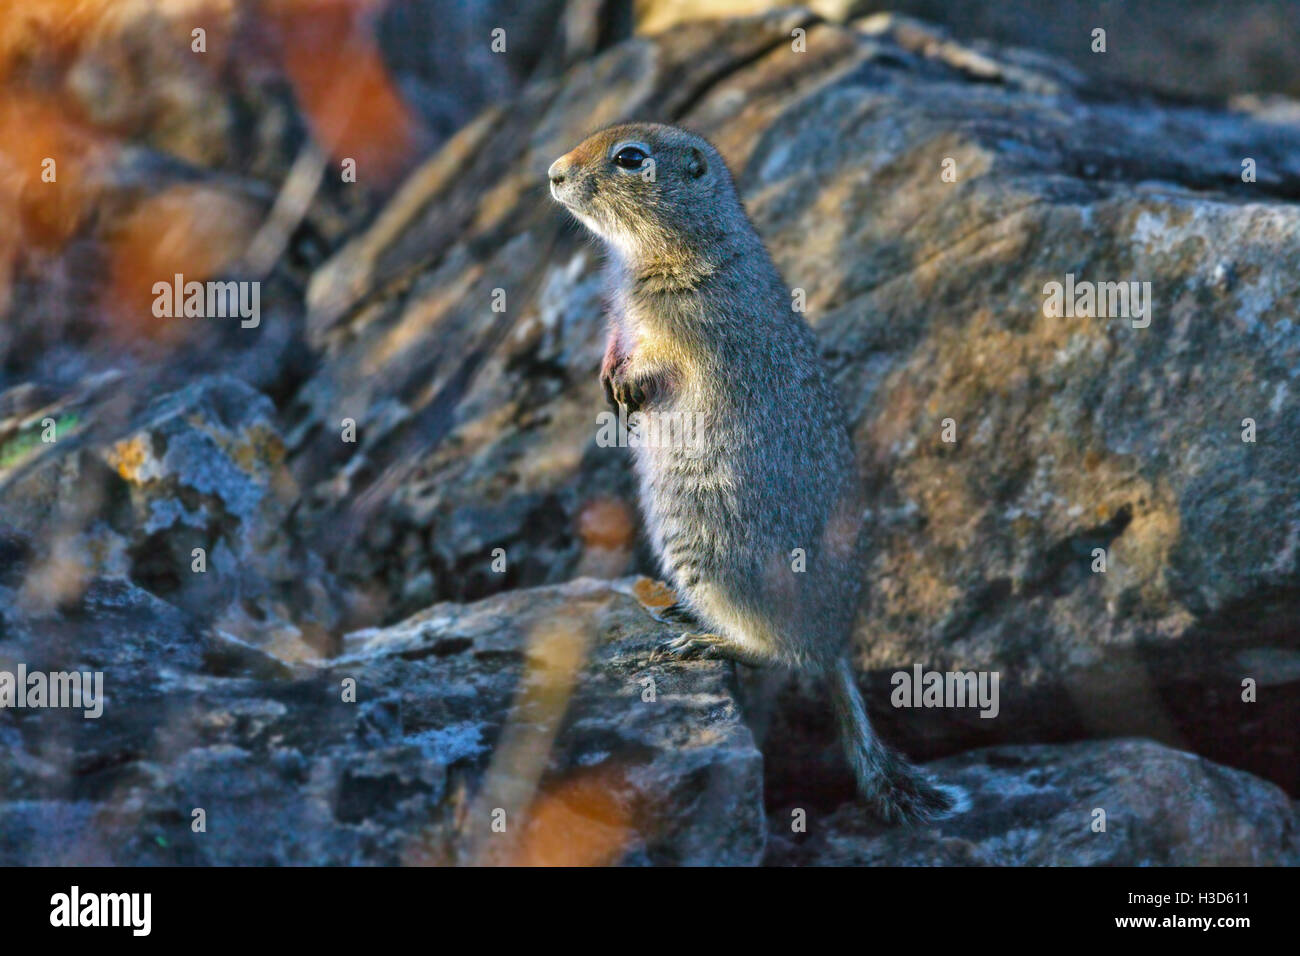 Arctic ground squirrel or parka, stands on a pile of rocks high in the tundra scrub prior to hibernation, Alaska, - Stock Image